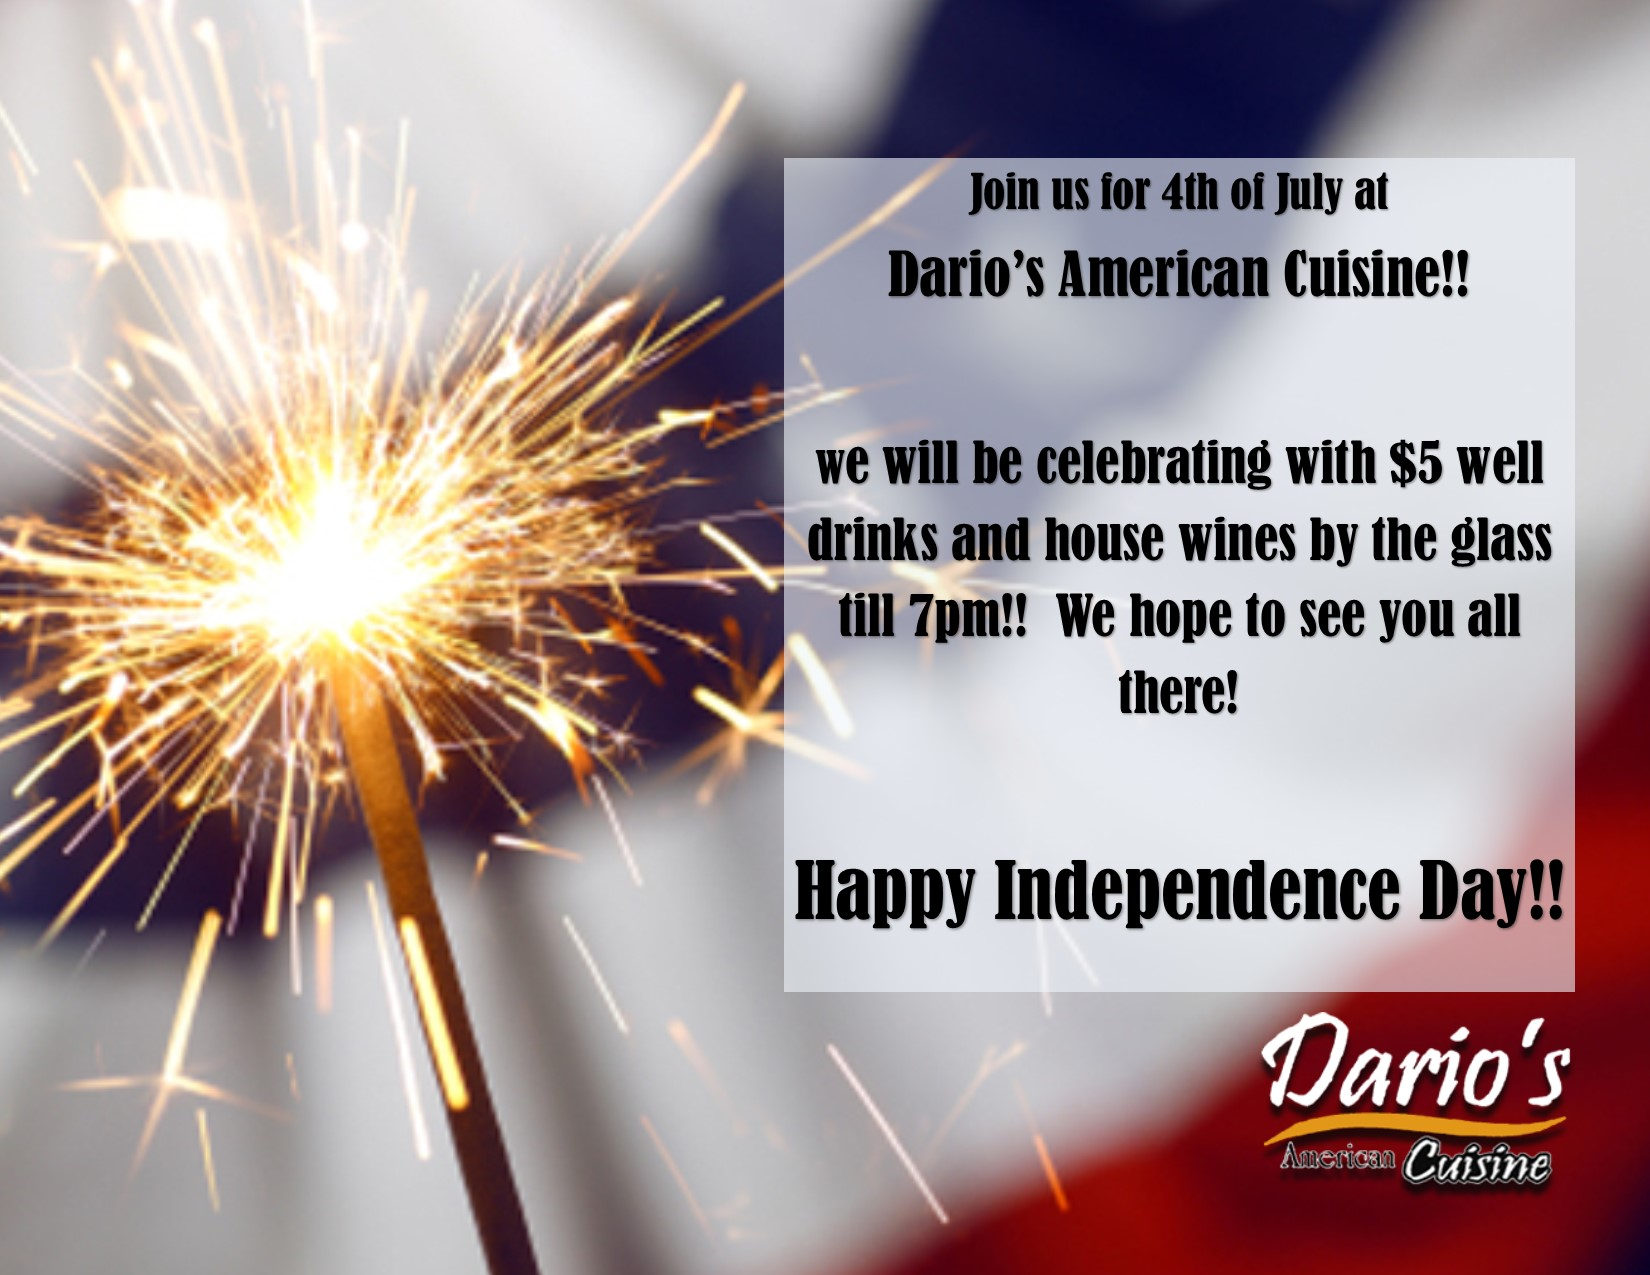 Join us for Independence Day at Dario's!!